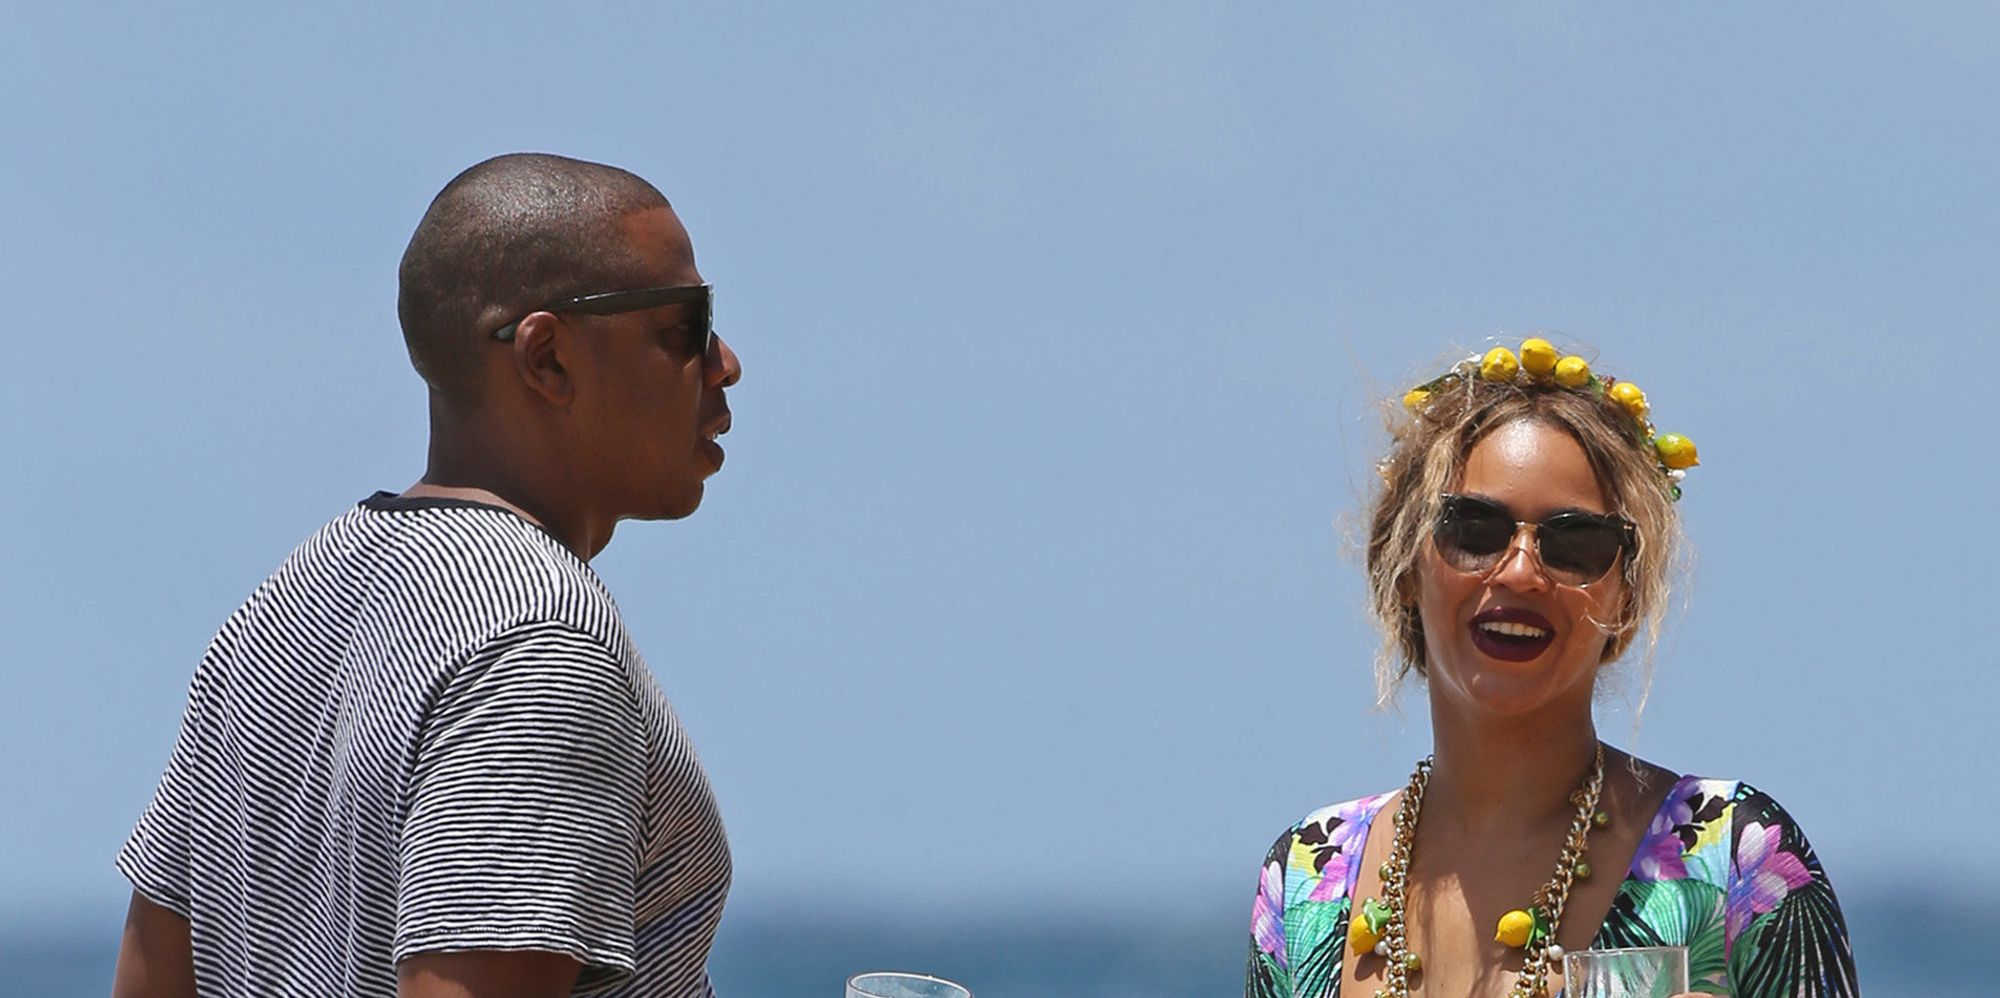 Stop What You're Doing And Look At Beyonce's Incredible Bathing Suit